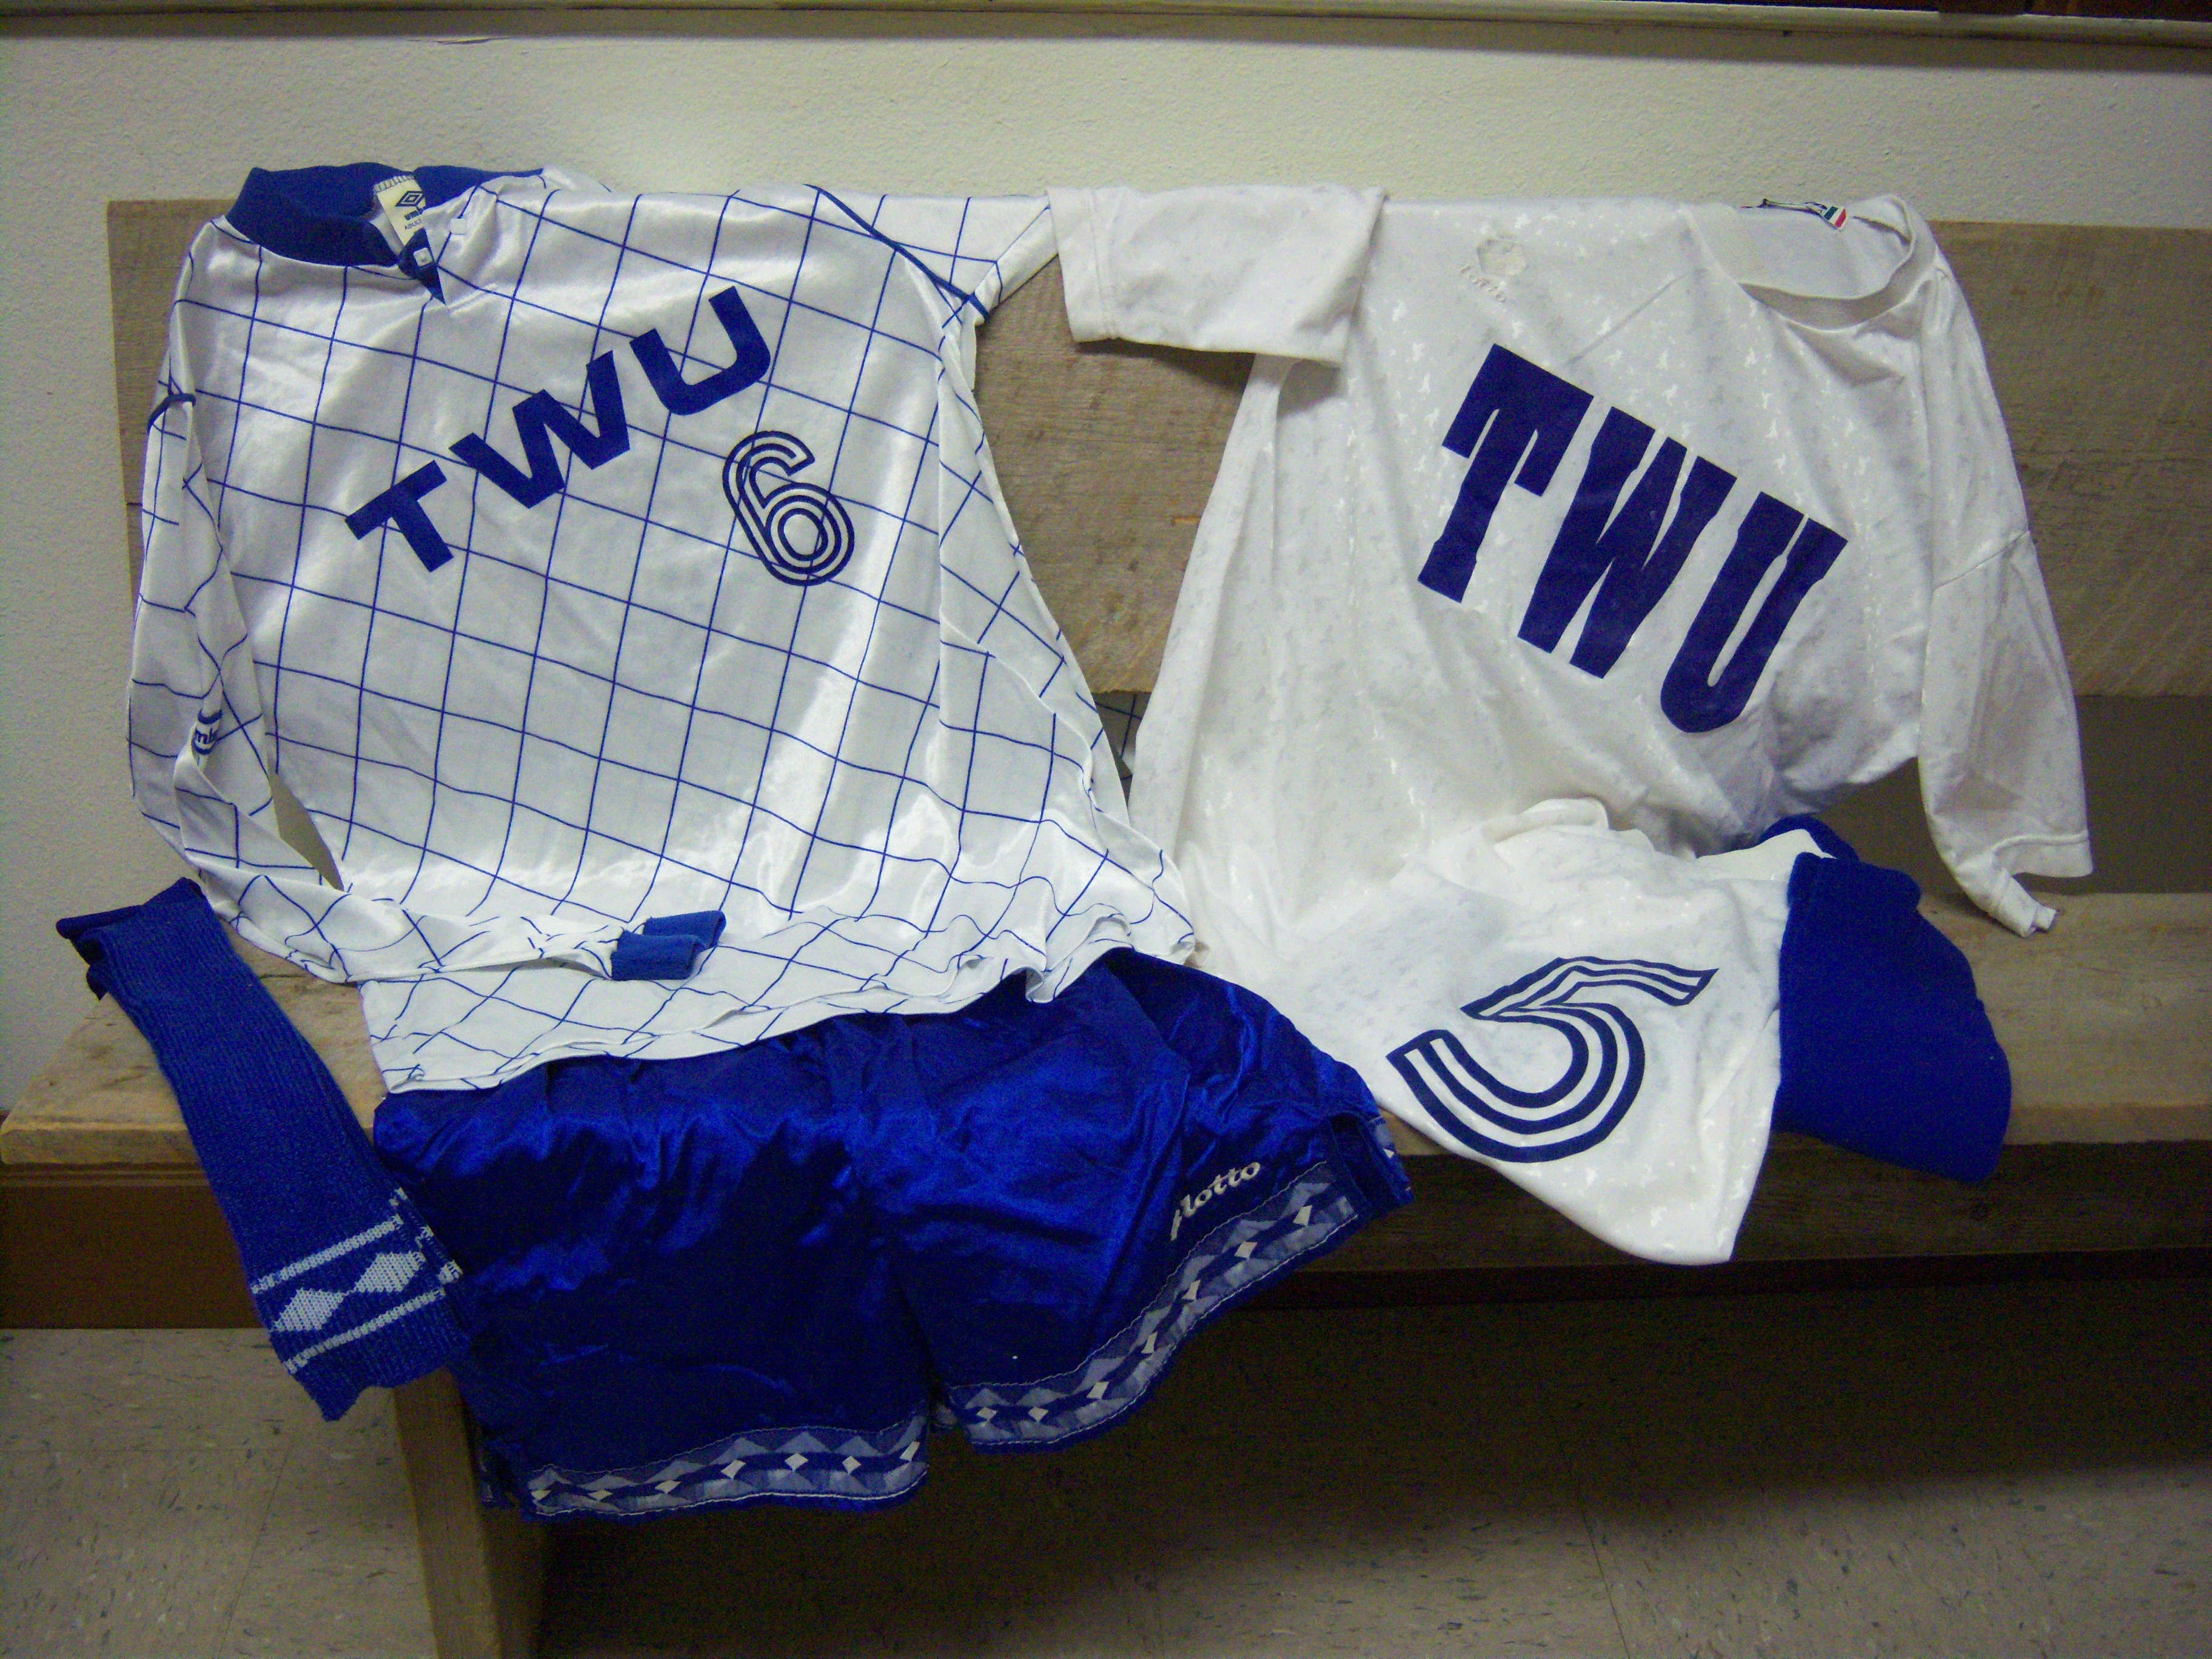 White and Blue Soccer Uniforms